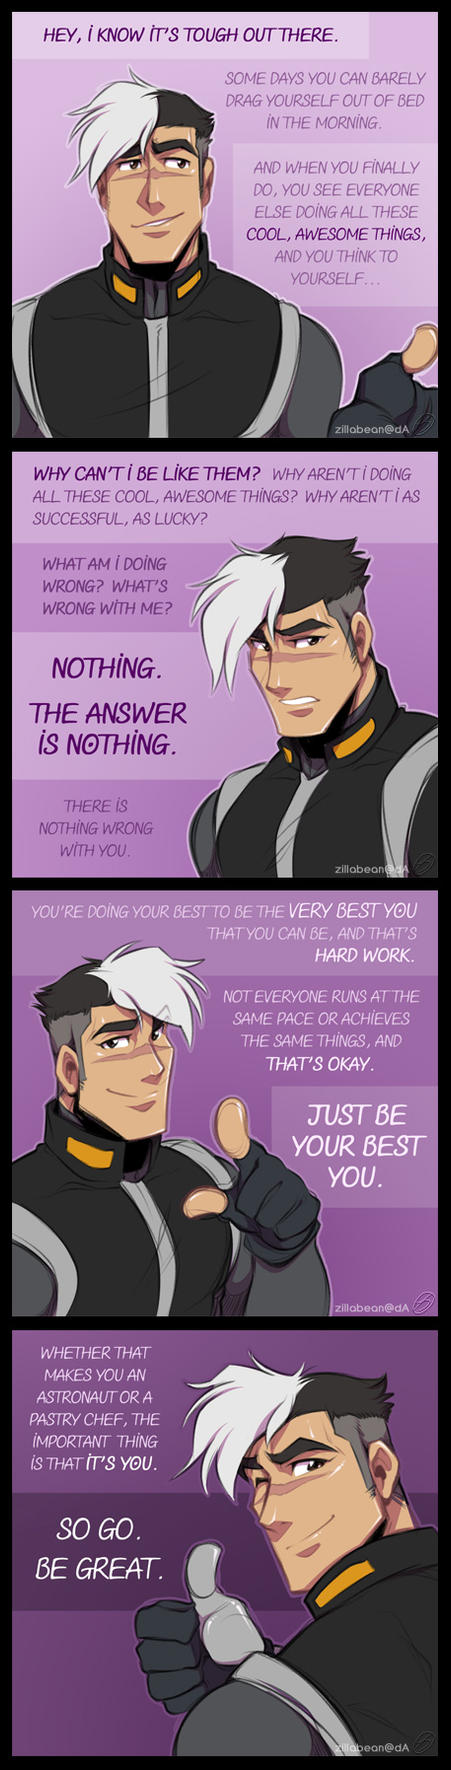 Motivational Space Dad by zillabean